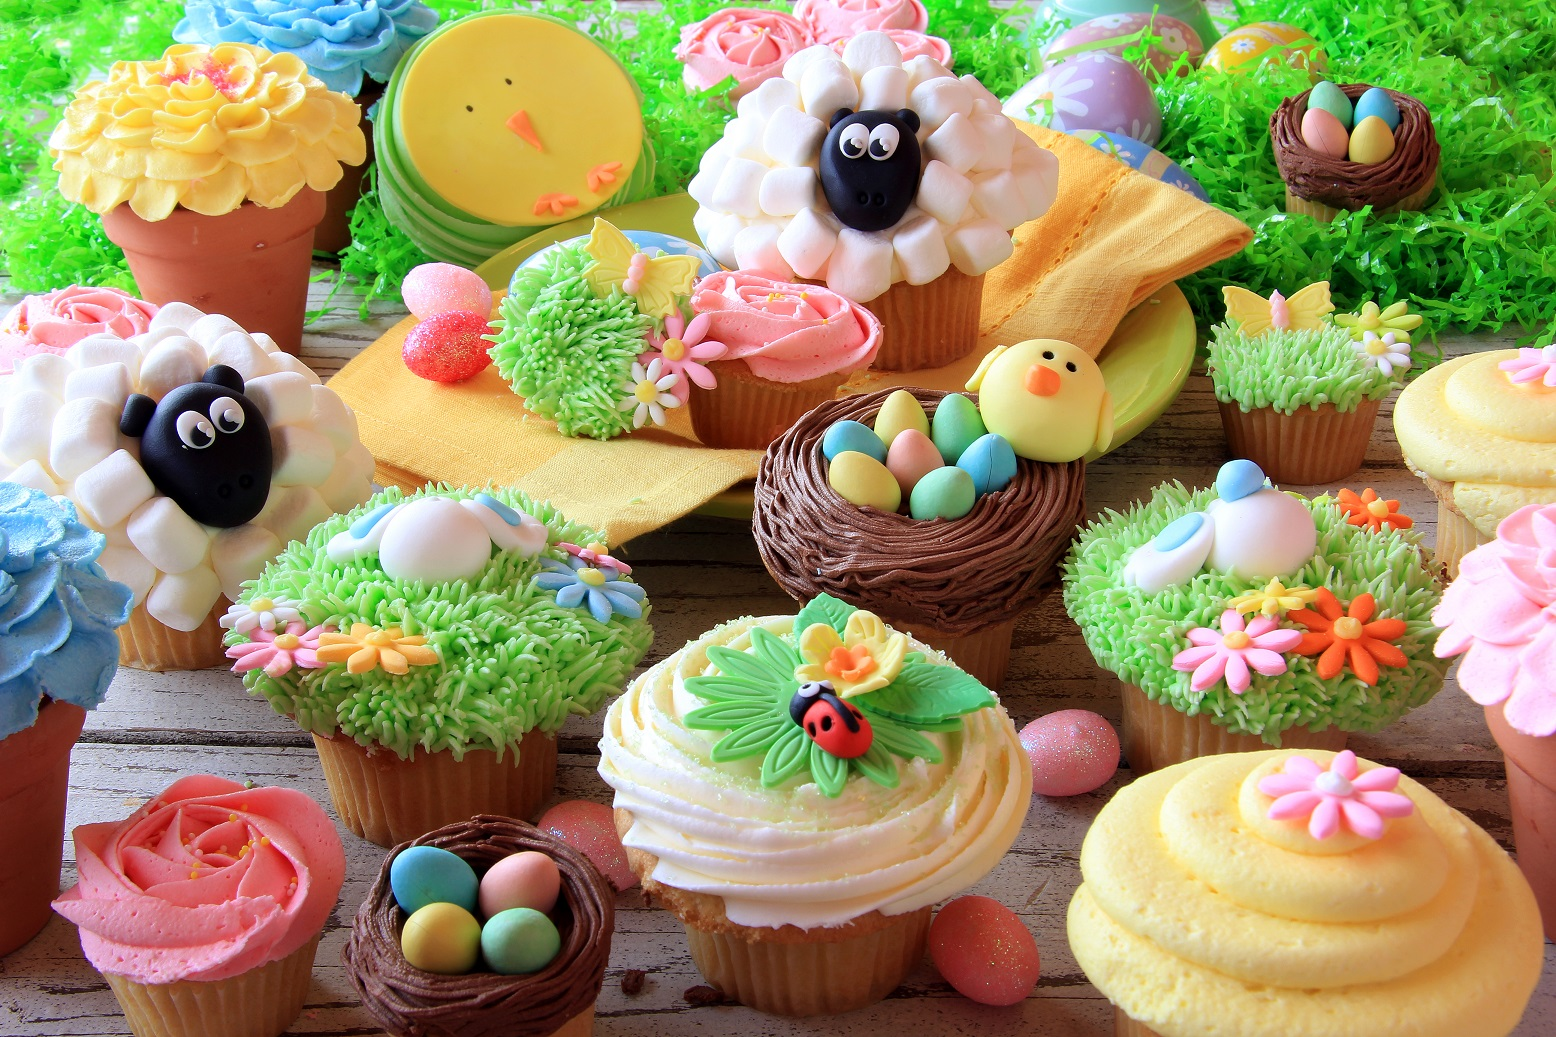 Children and Novelty cupcakes